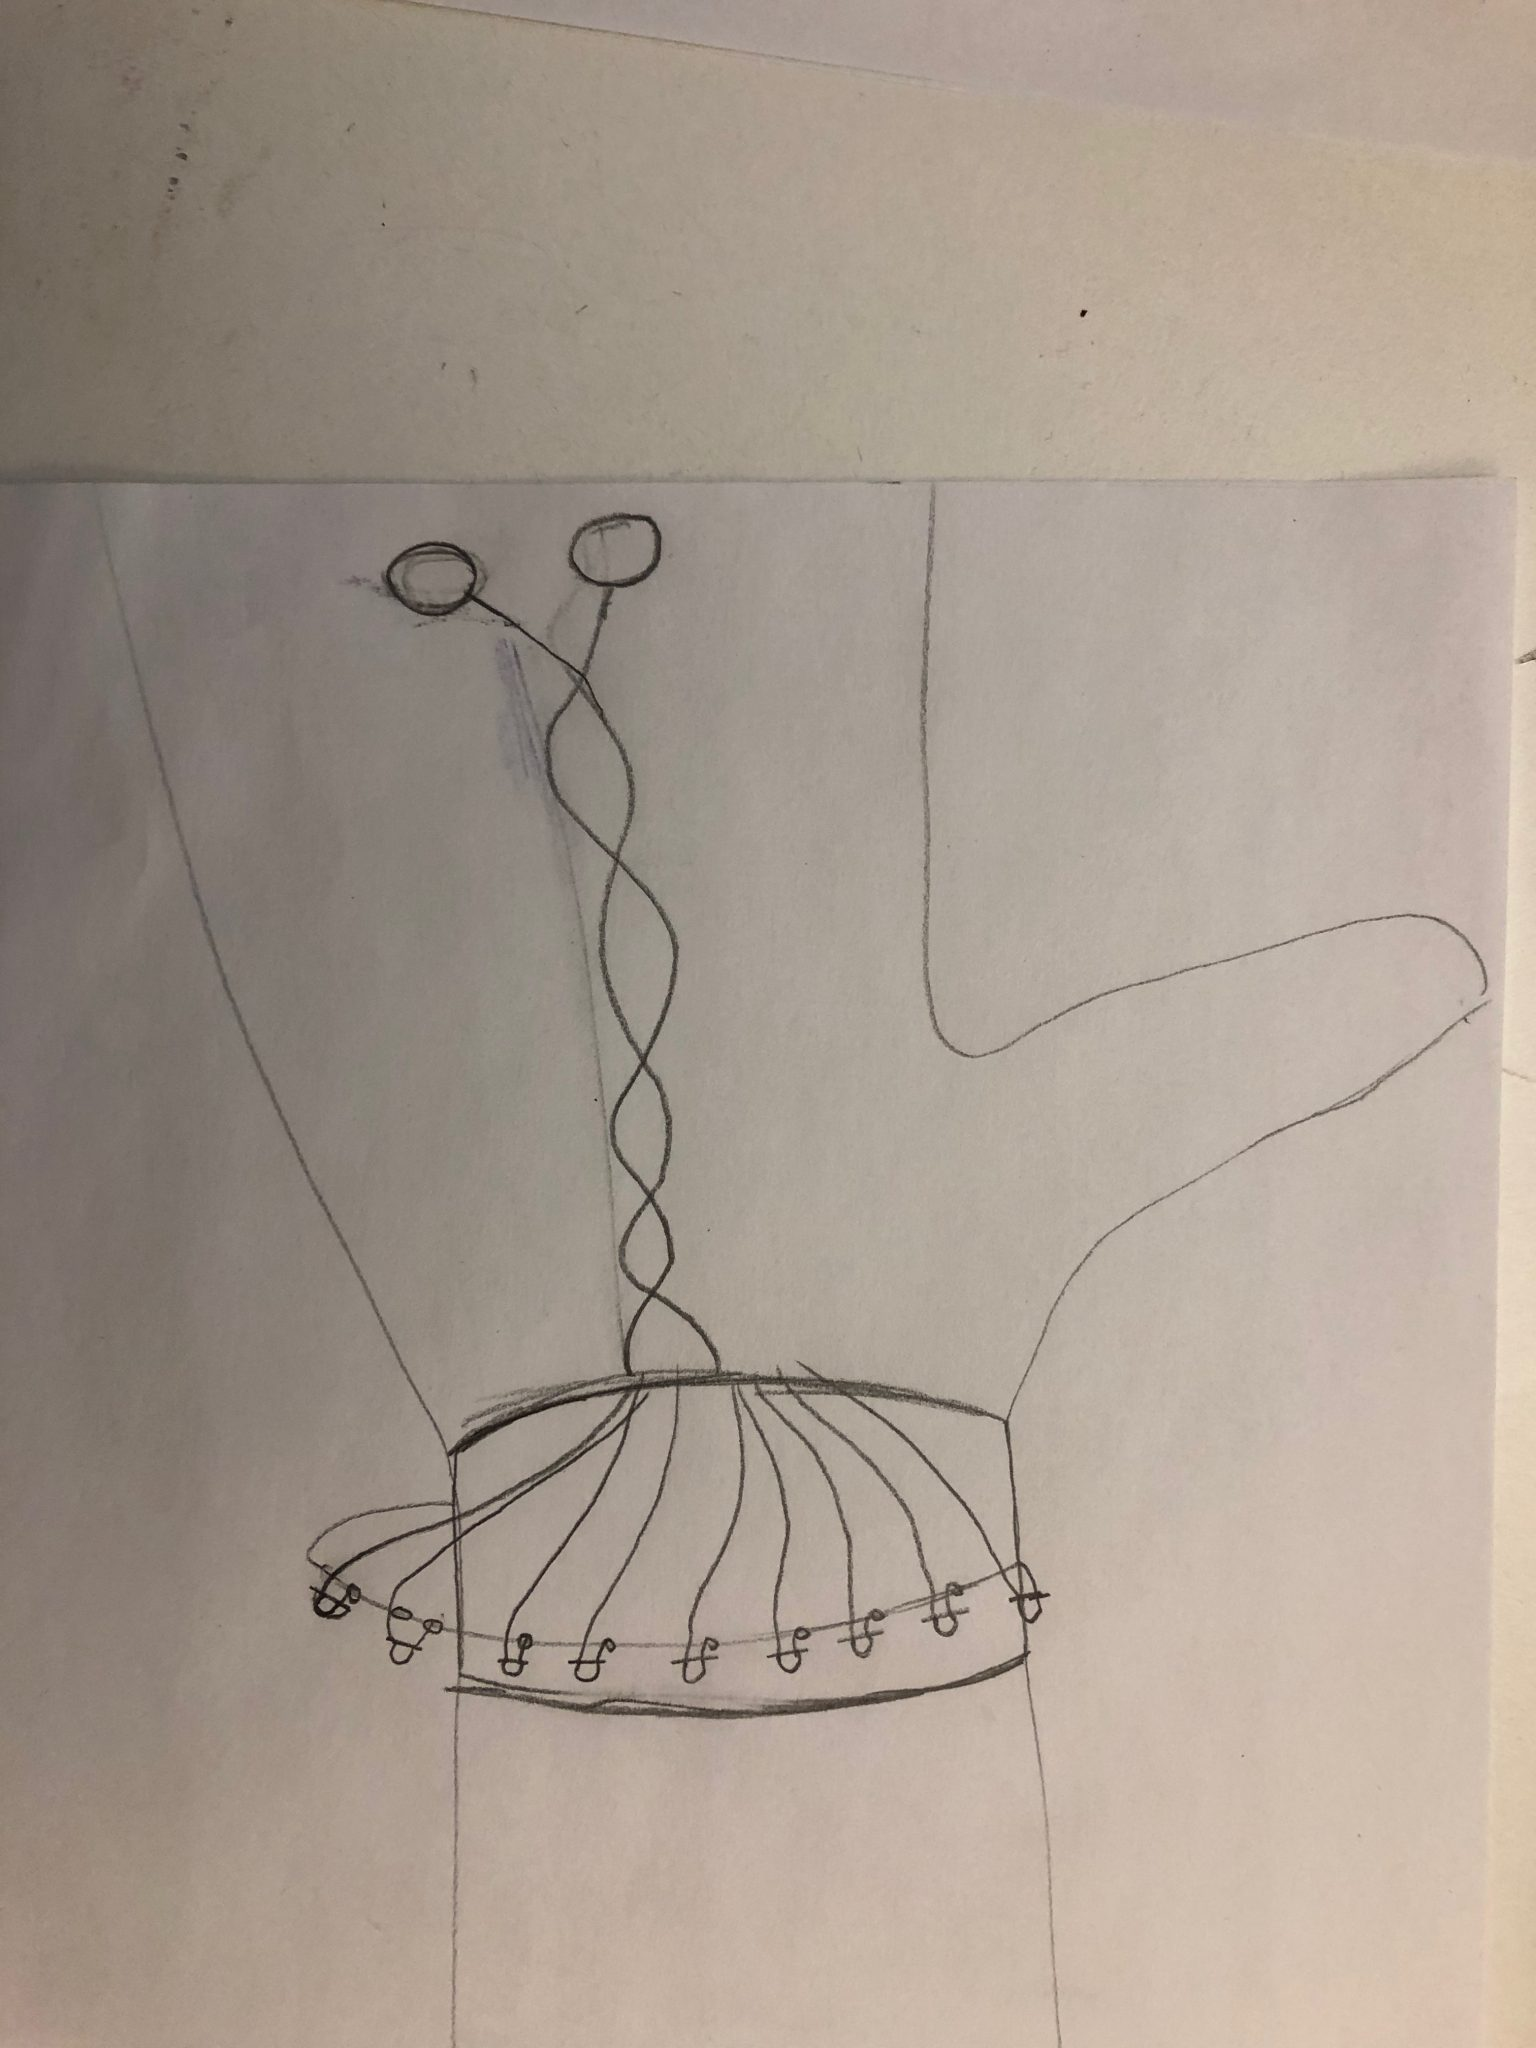 A sketch of the bracelet in the chain link design